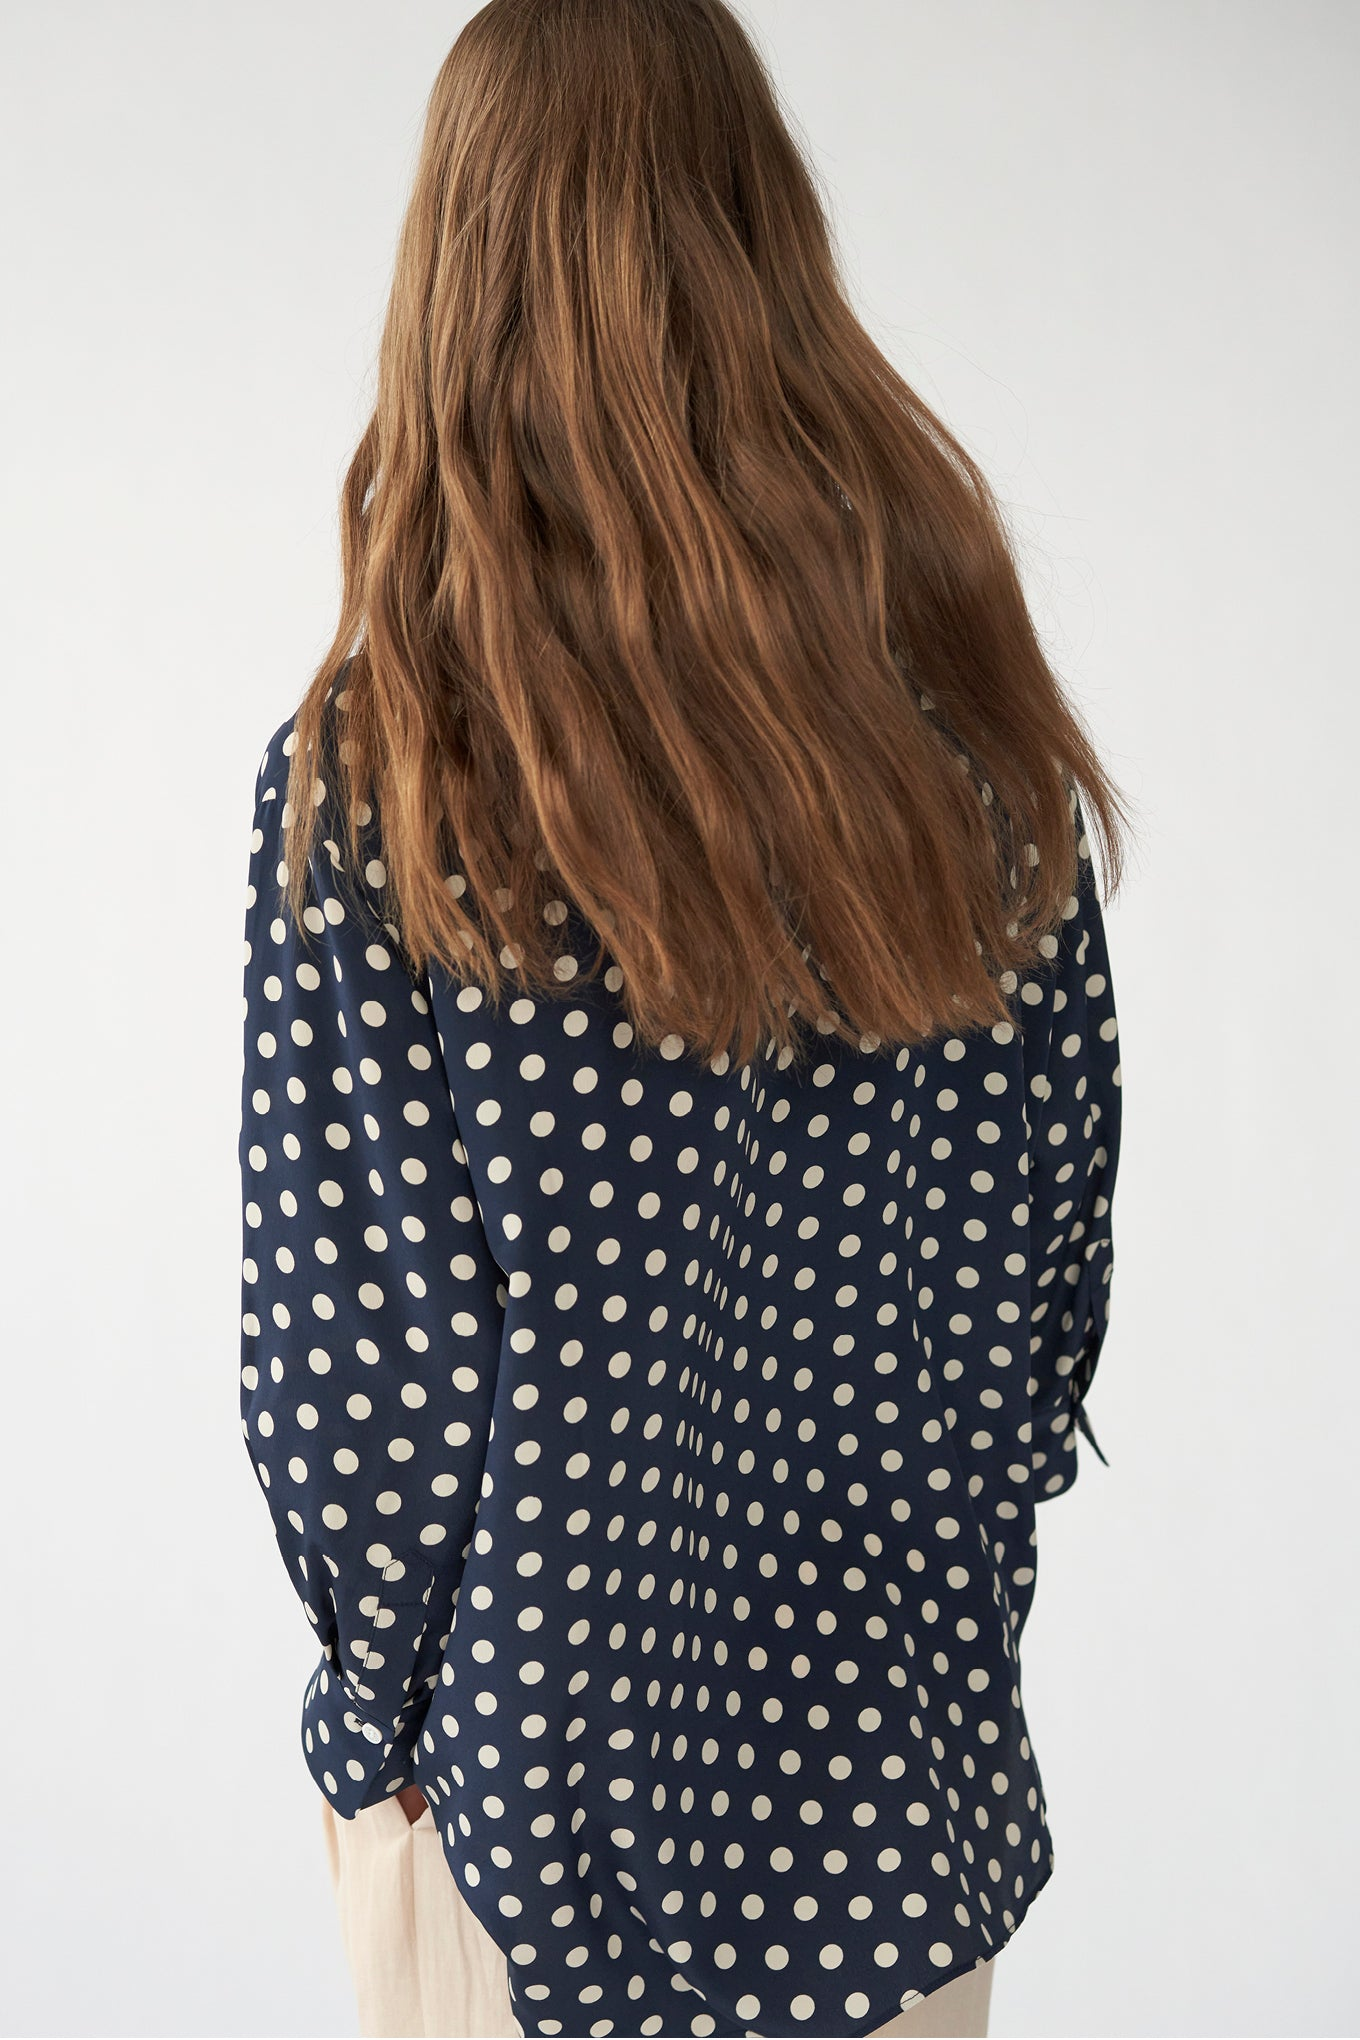 ELIZA SHIRT - NAVY/WHITE DOT - CREPE DE CHINE SILK